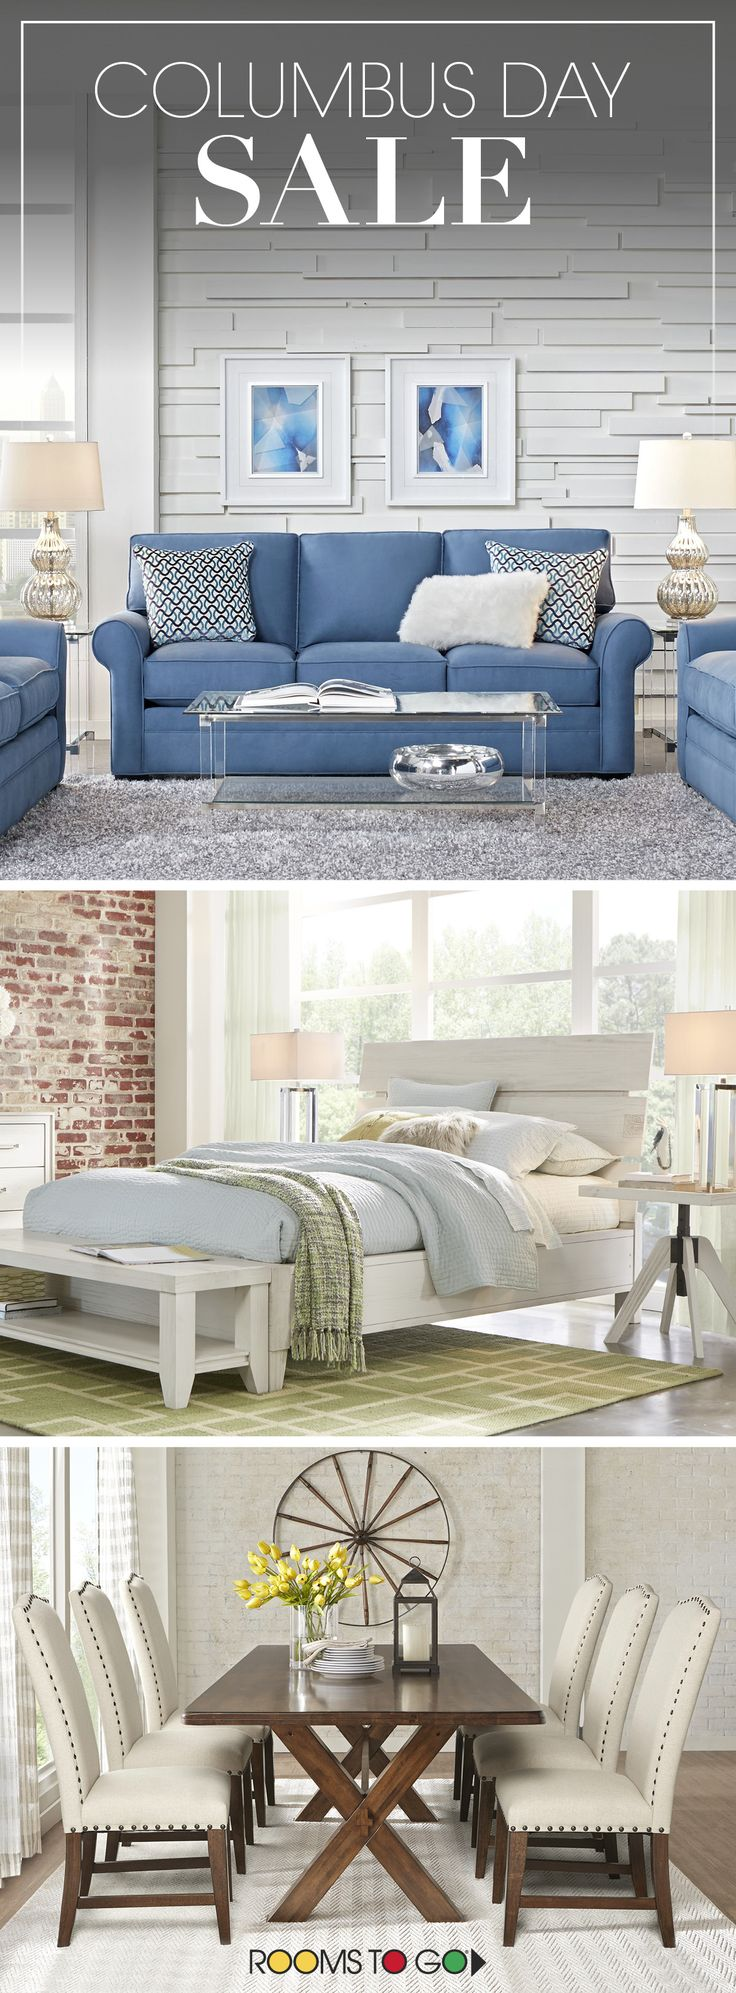 Looking For The Best Furniture Deals? Visit Rooms To Go Now, And Save On ·  Furniture DealsBest FurnitureColumbus Day SaleFarmhouse ...